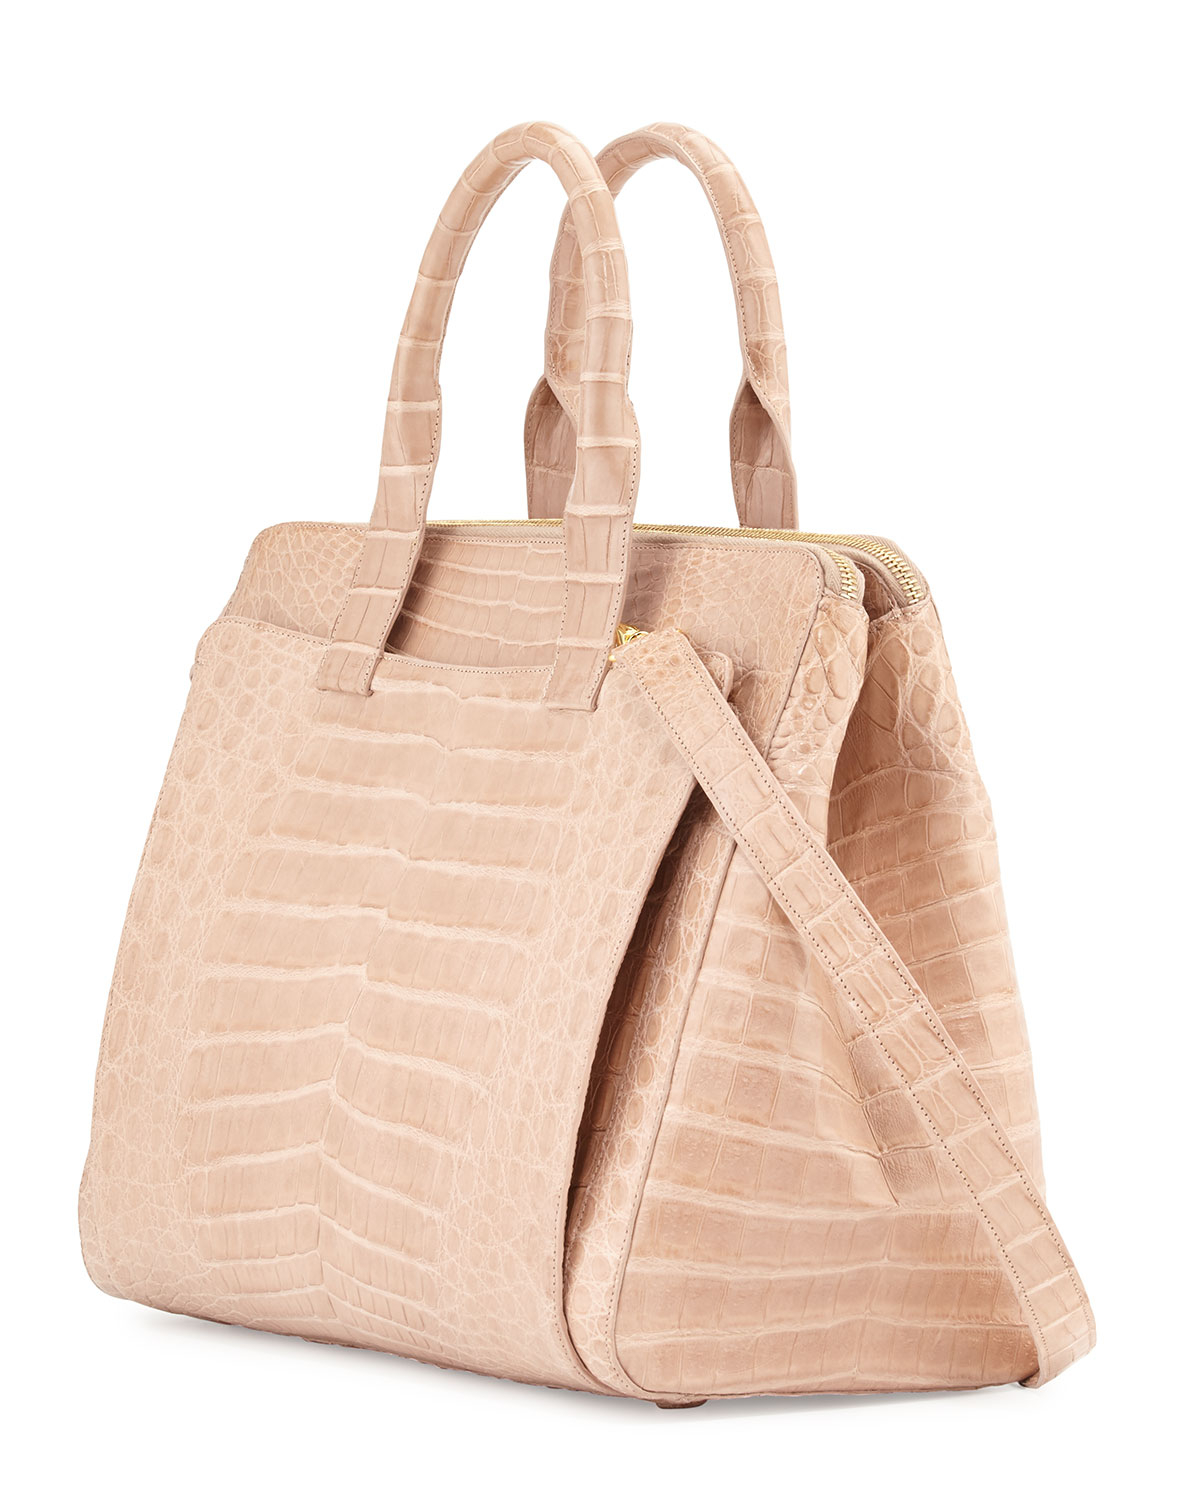 Nancy gonzalez large crocodile tote bag in natural lyst for Nancy gonzalez crocodile tote